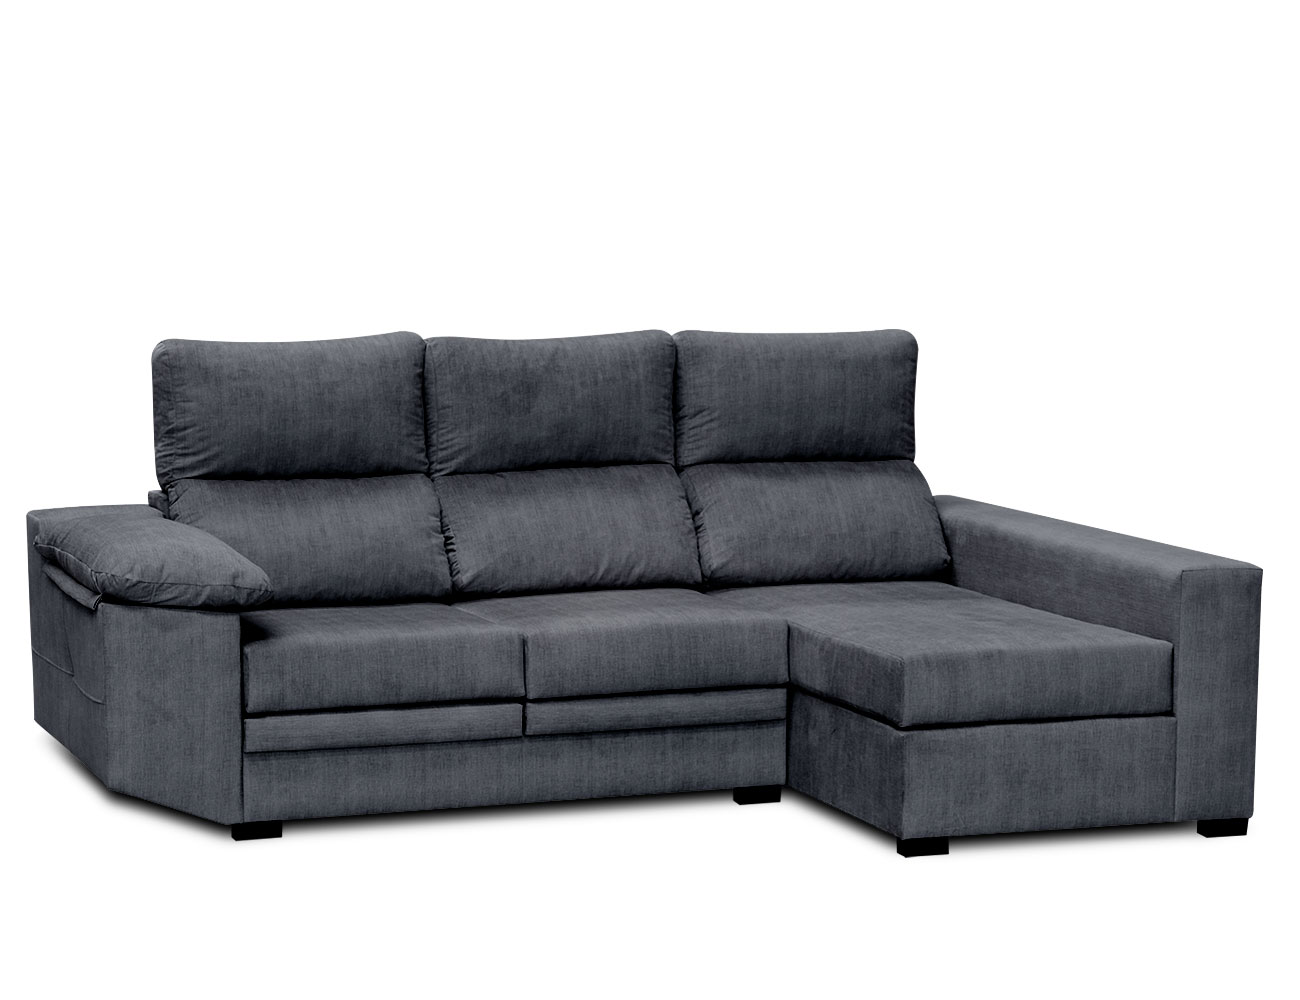 Sofa chaiselongue moderno ceniza 3